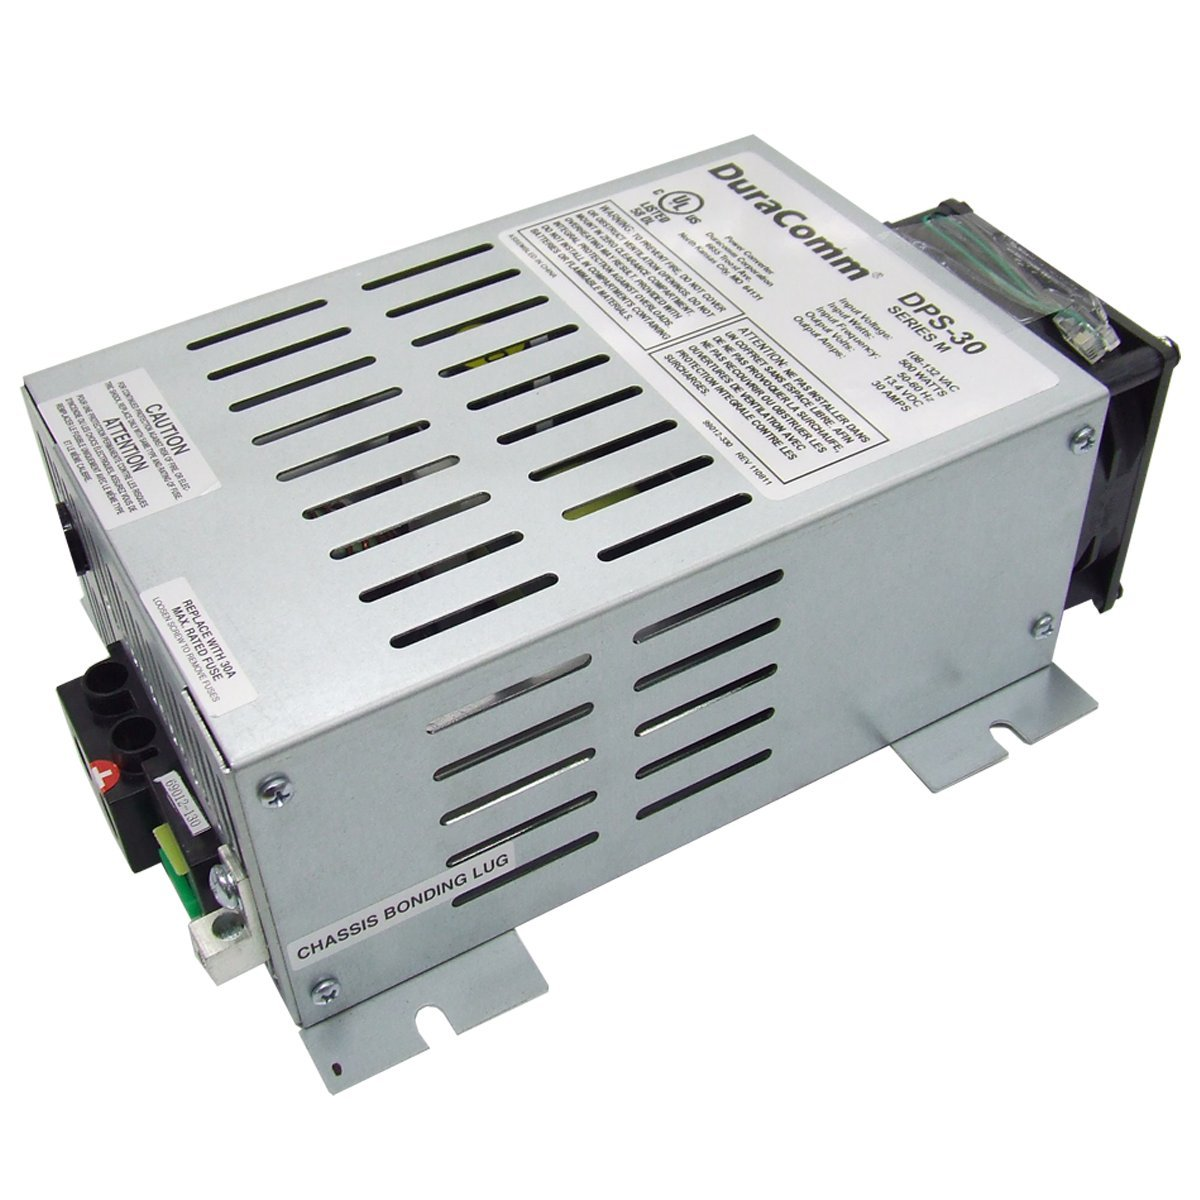 DuraComm DPS-30 Power Source Utilities with Low Noise Supply